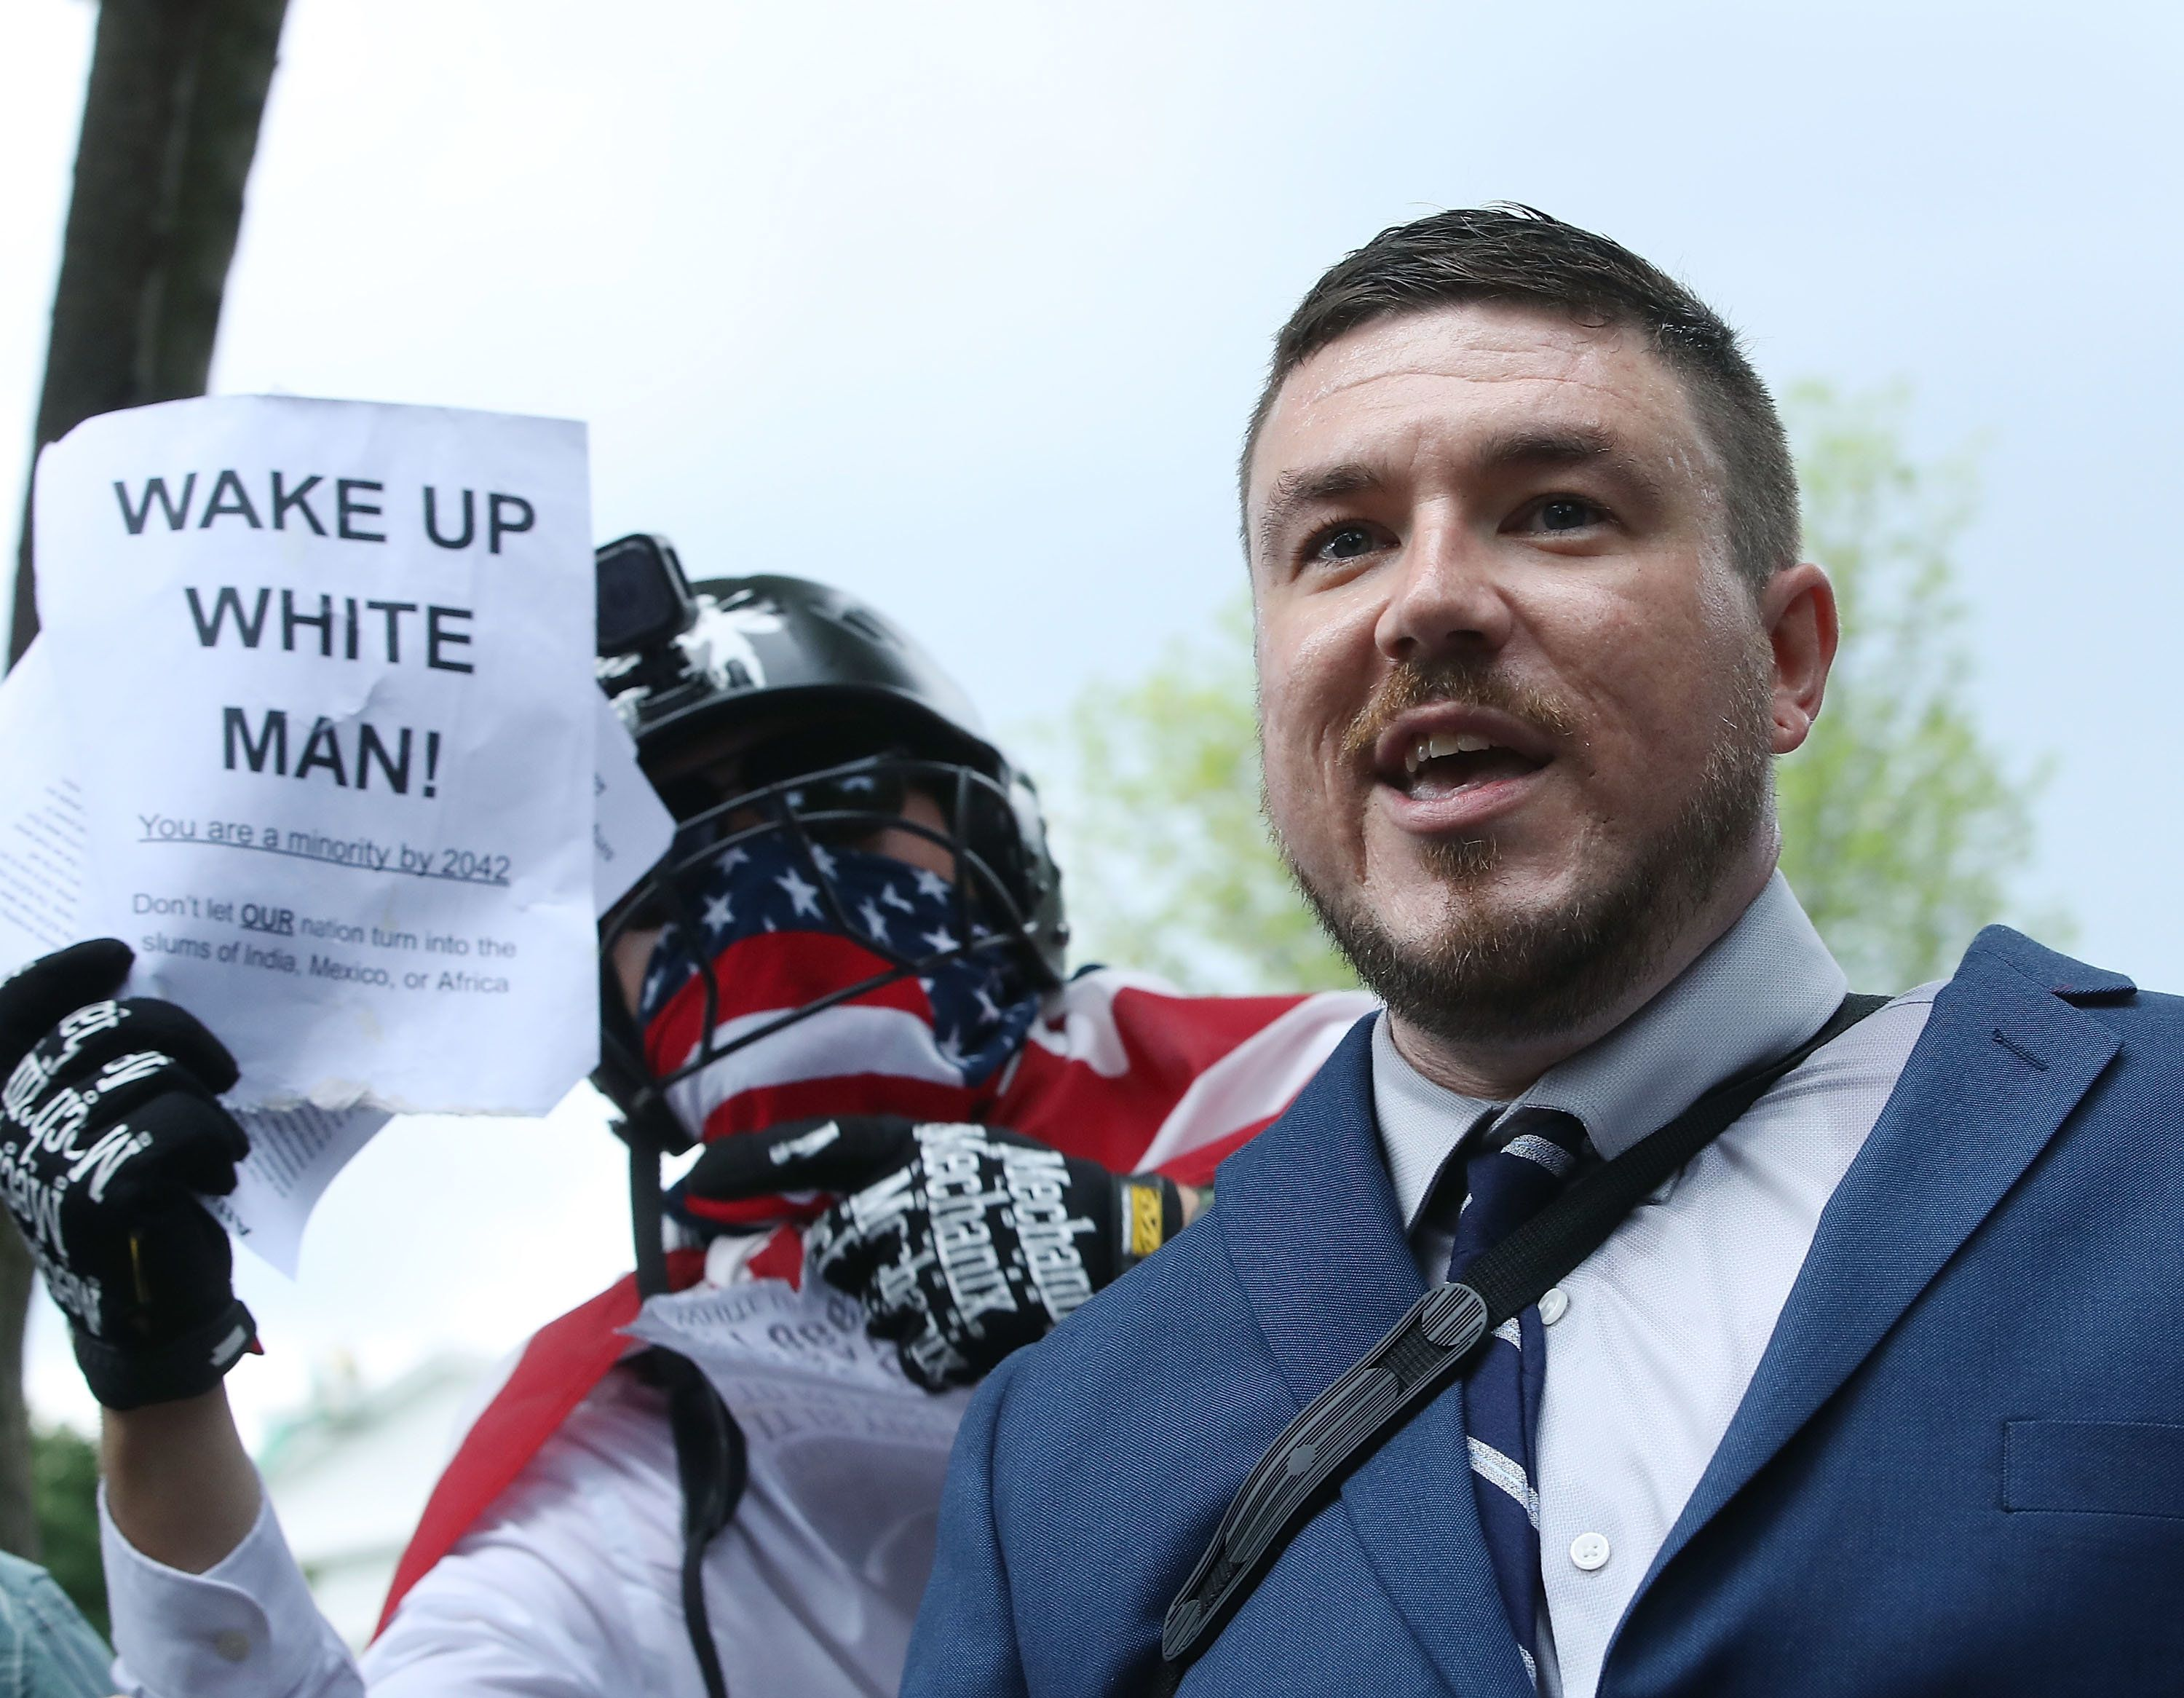 WASHINGTON, DC - AUGUST 12:  Jason Kessler (C), who organized the rally, speaks as white supremacists, neo-Nazis, members of the Ku Klux Klan and other hate groups gather for the Unite the Right rally in Lafayette Park across from the White House August 12, 2018 in Washington, DC. Thousands of protesters are expected to demonstrate against the 'white civil rights' rally, which was planned by the organizer of last yearÕs deadly rally in Charlottesville, Virginia  (Photo by Mark Wilson/Getty Images)